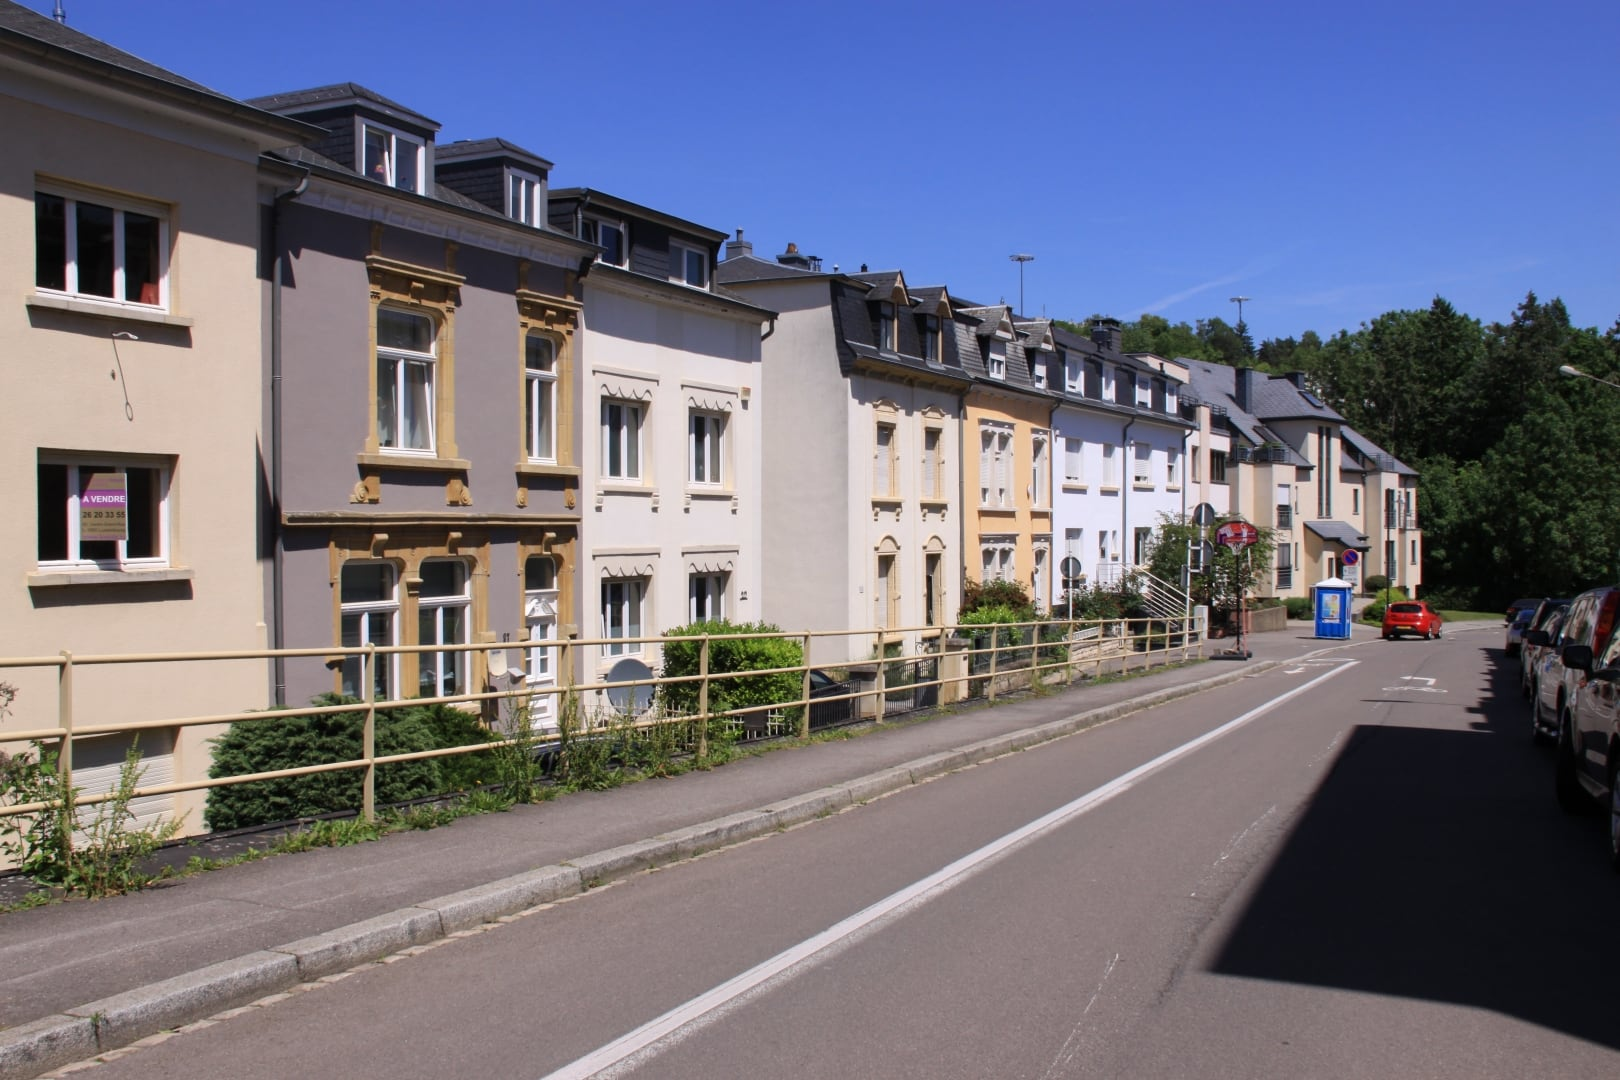 Real estate in Luxembourg: should you buy or rent?